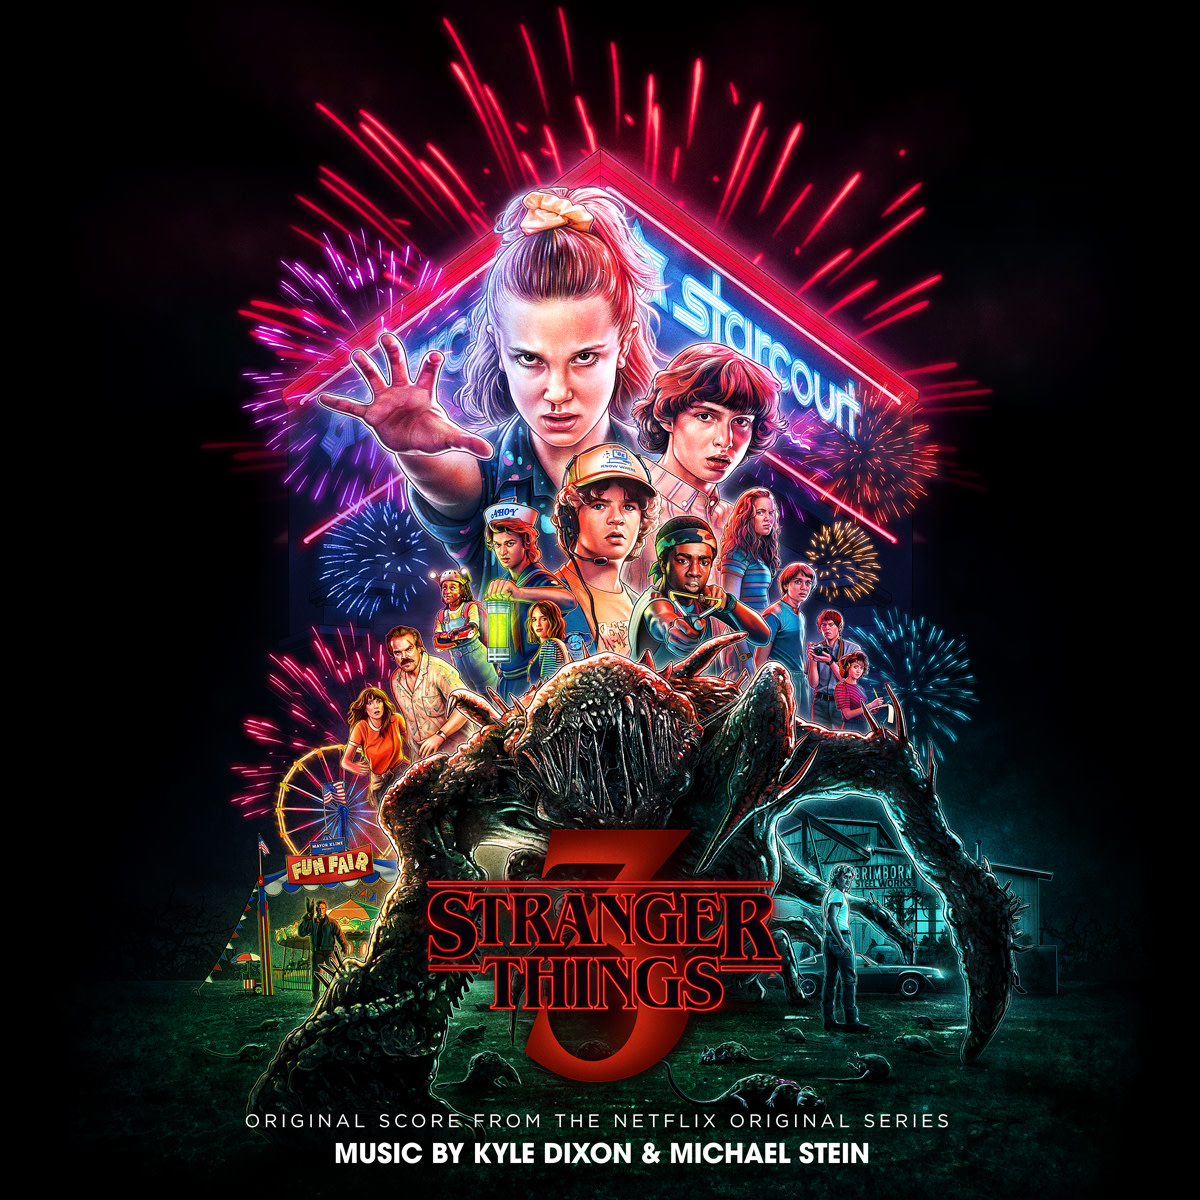 Stranger Things Season 3 Soundtrack